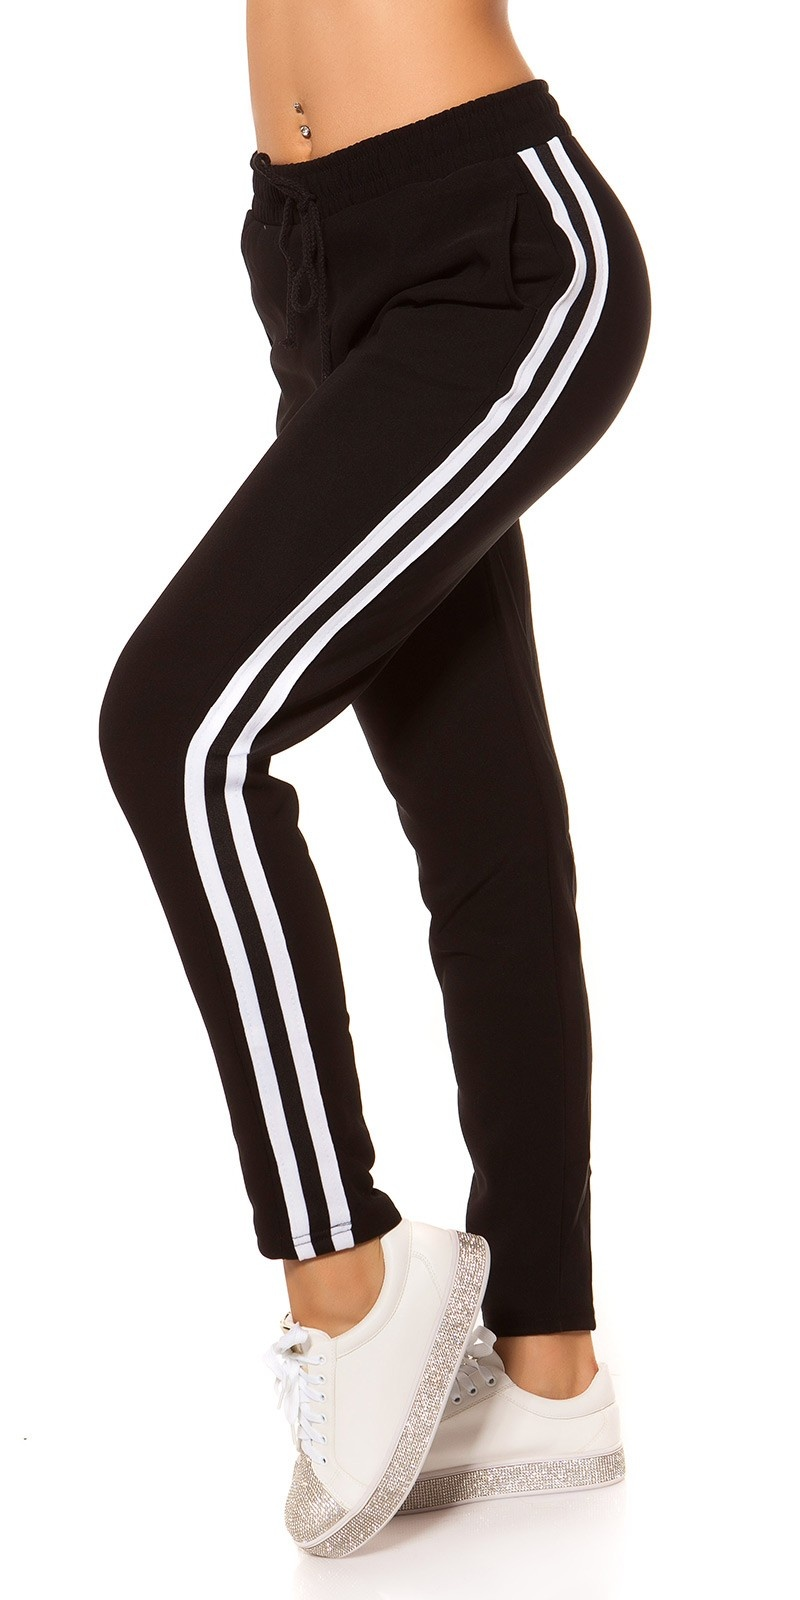 Trendy thermal joggers with contrast stripes Whiteblack